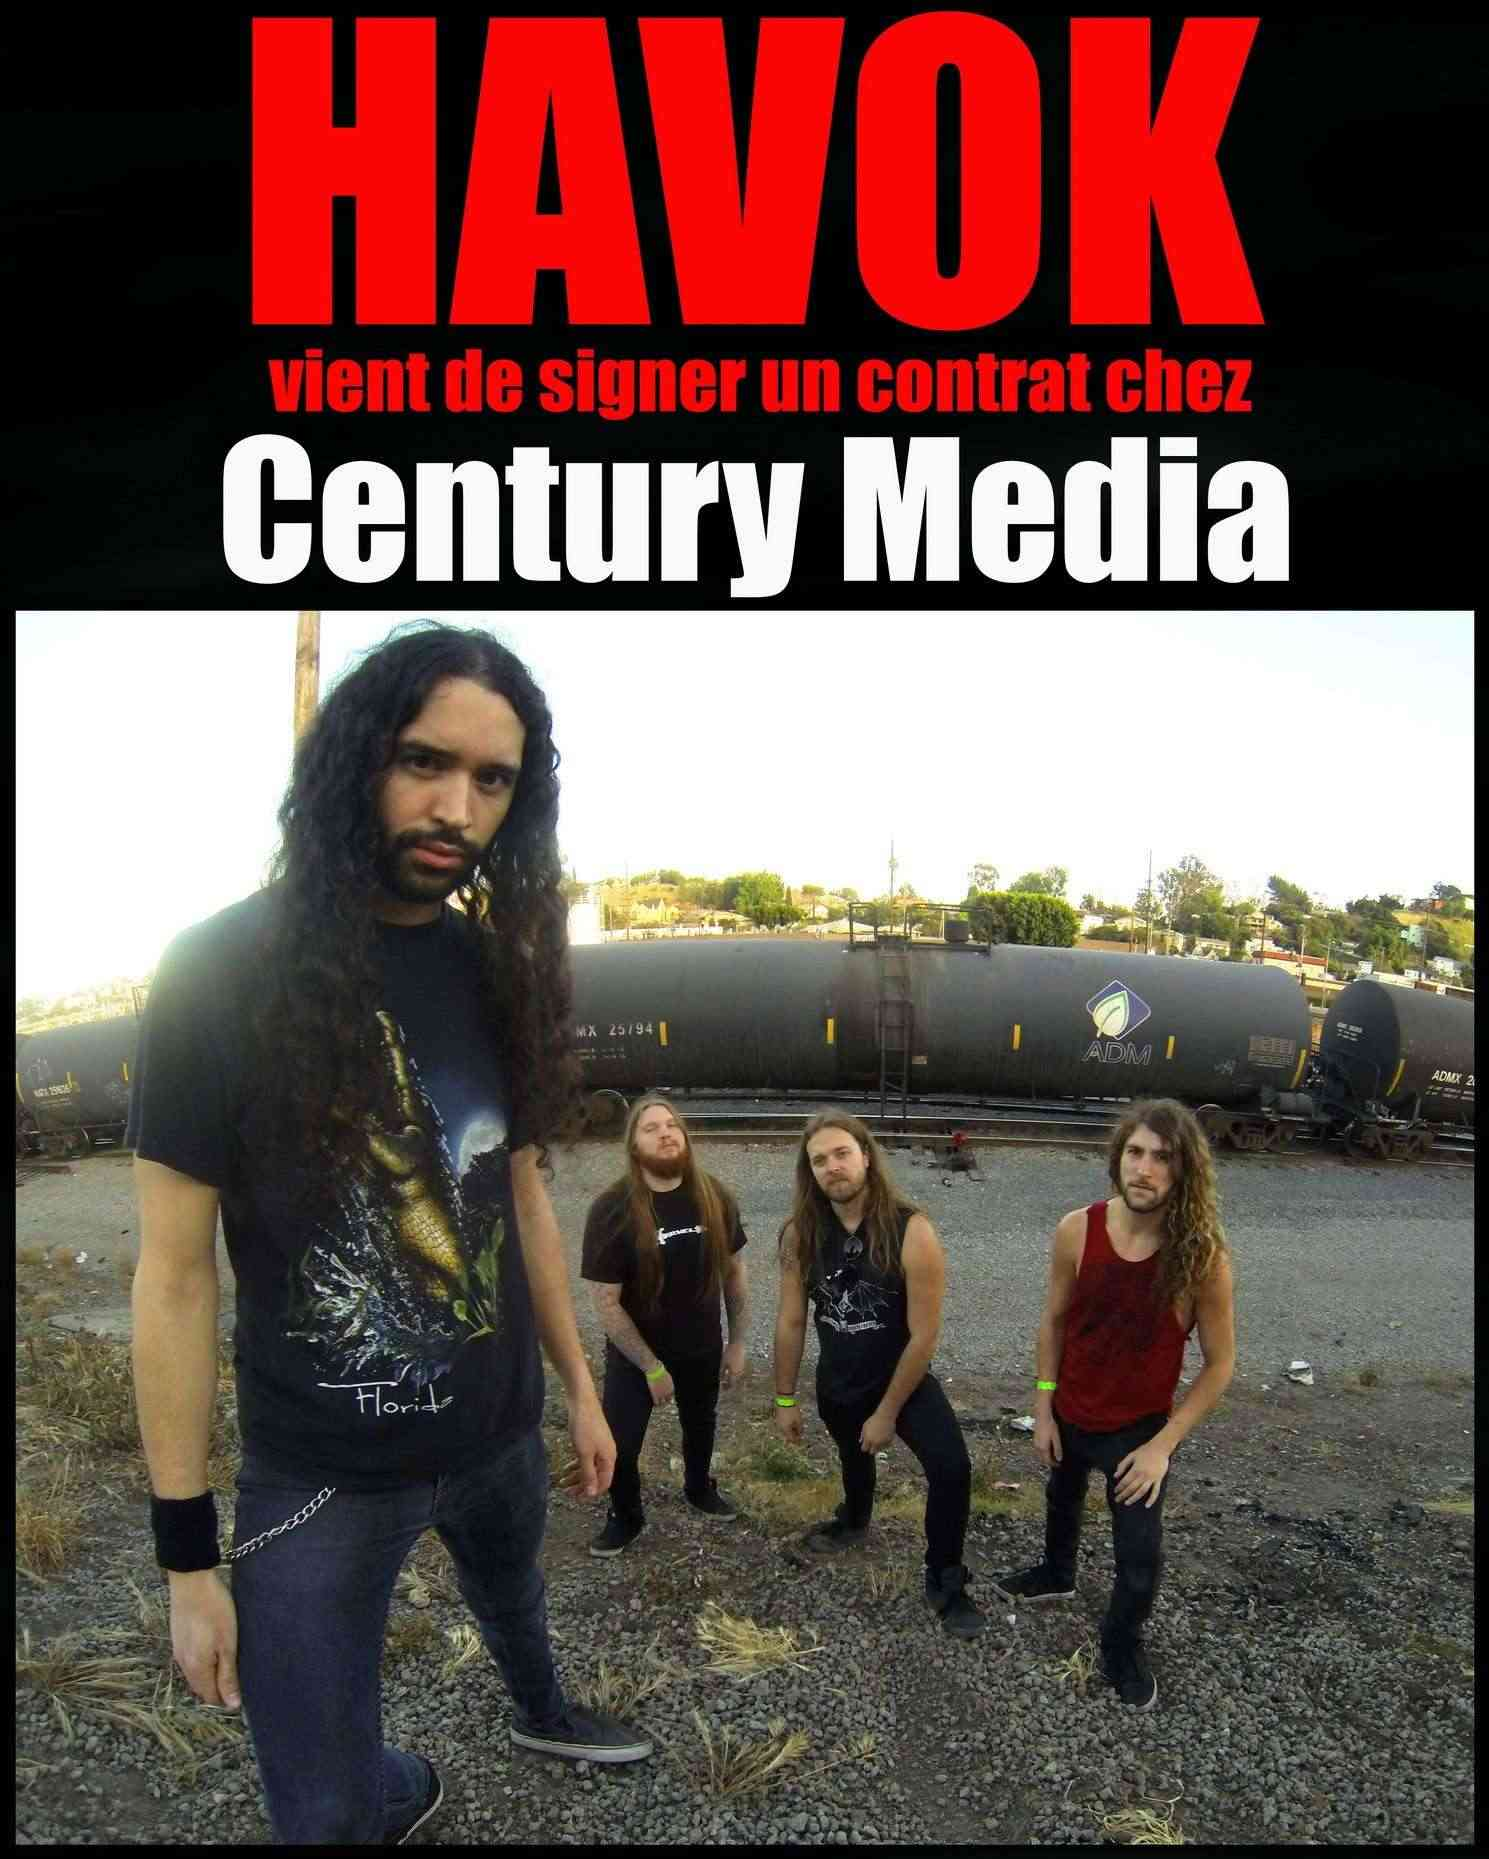 Les NEWS du METAL en VRAC ... - Page 6 Havok10